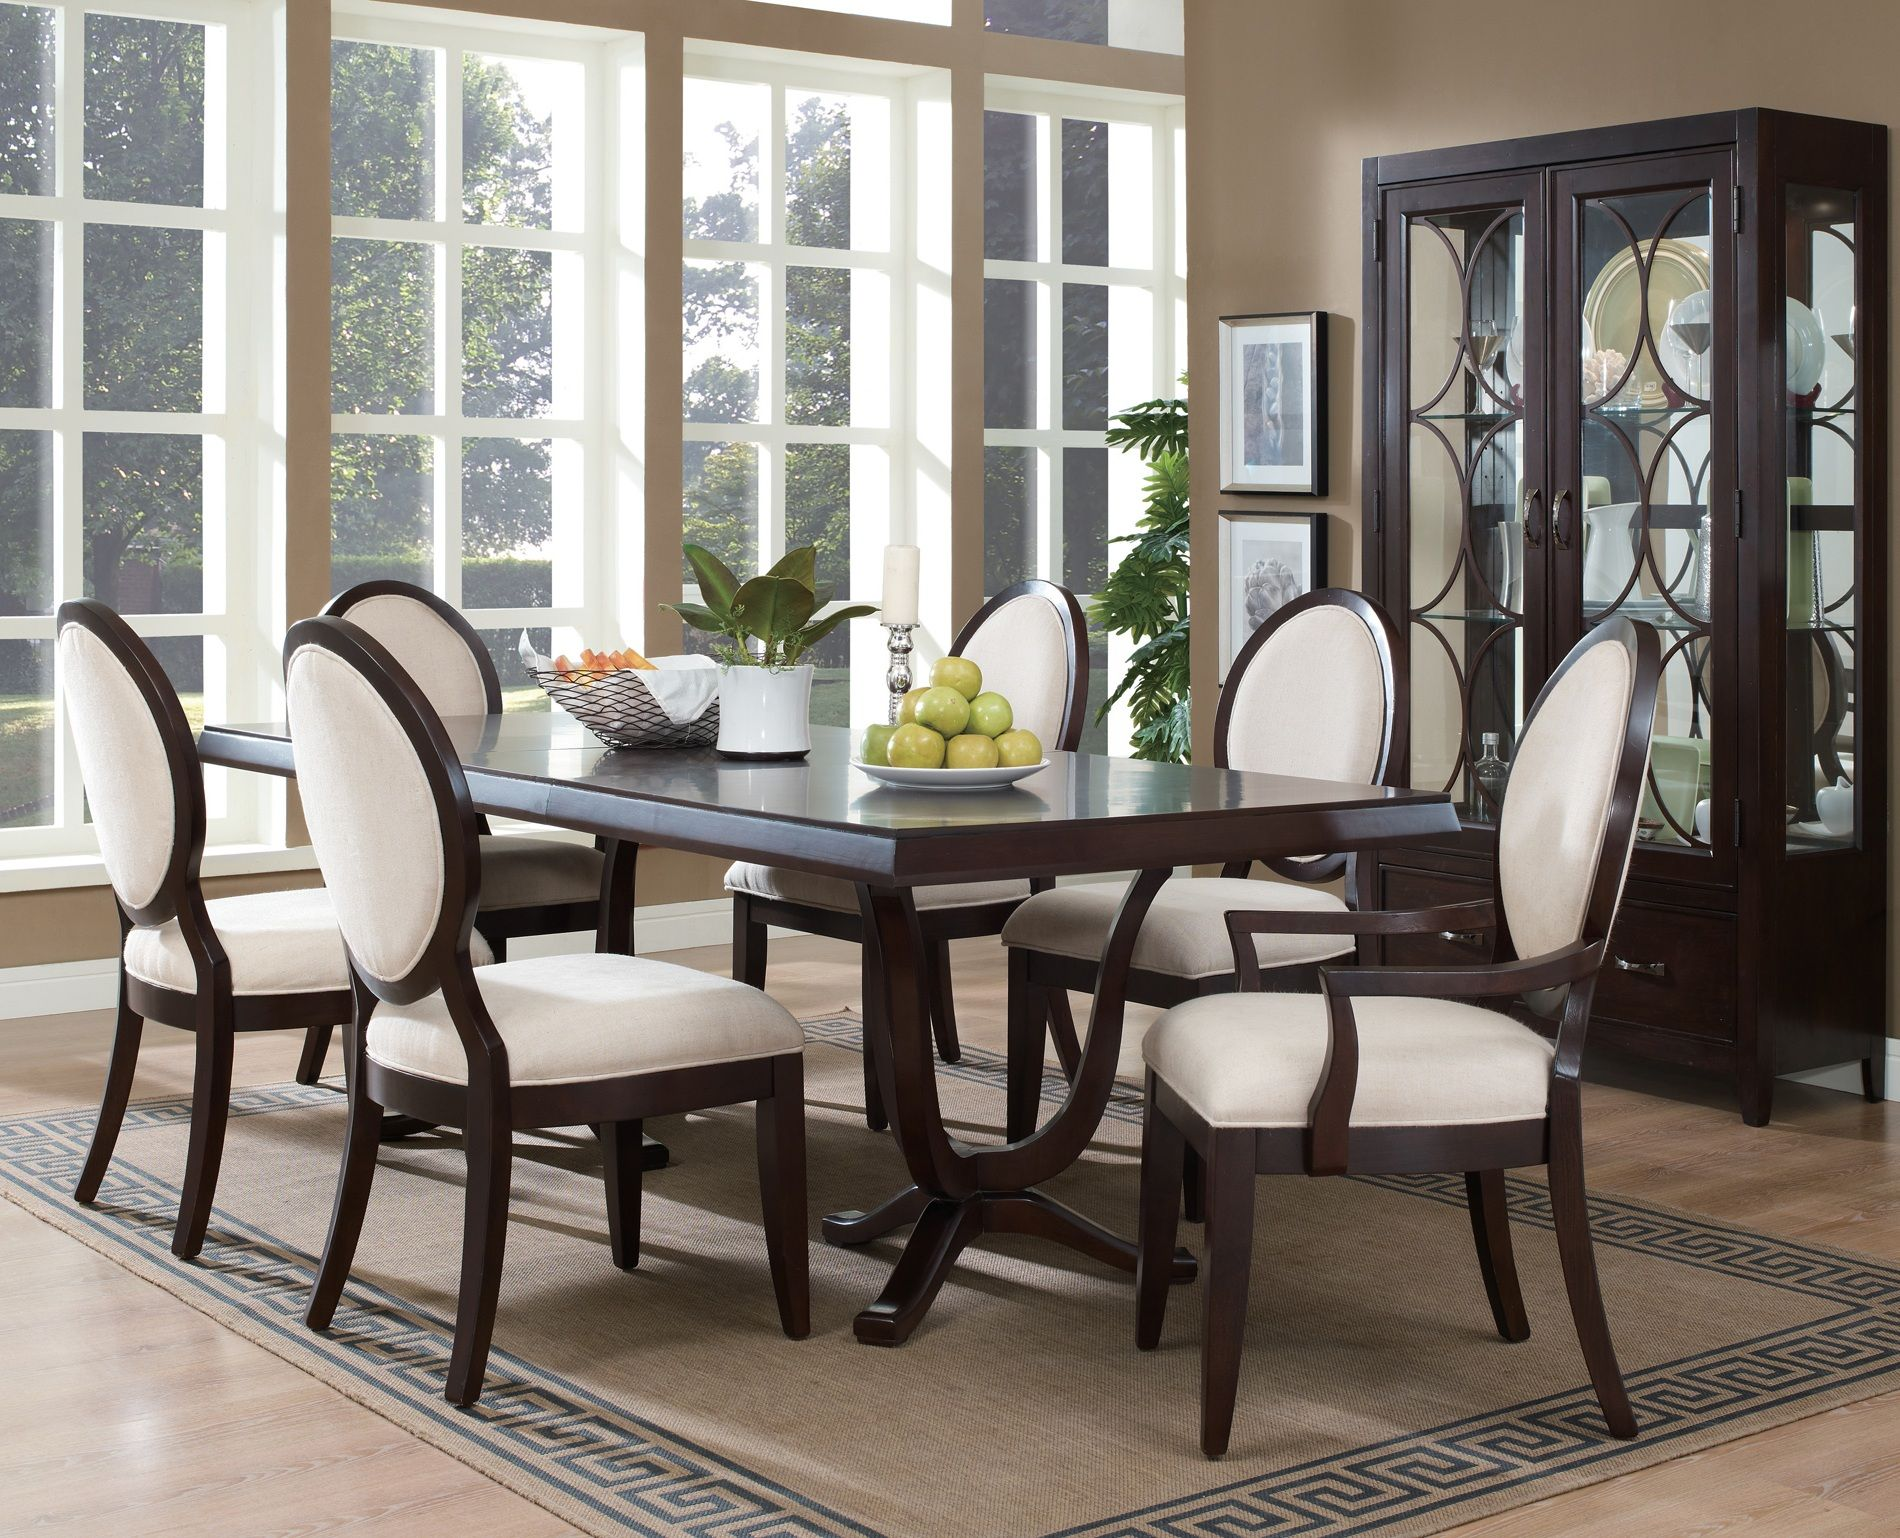 Décor For Formal Dining Room Designs Modern Setsdining Table